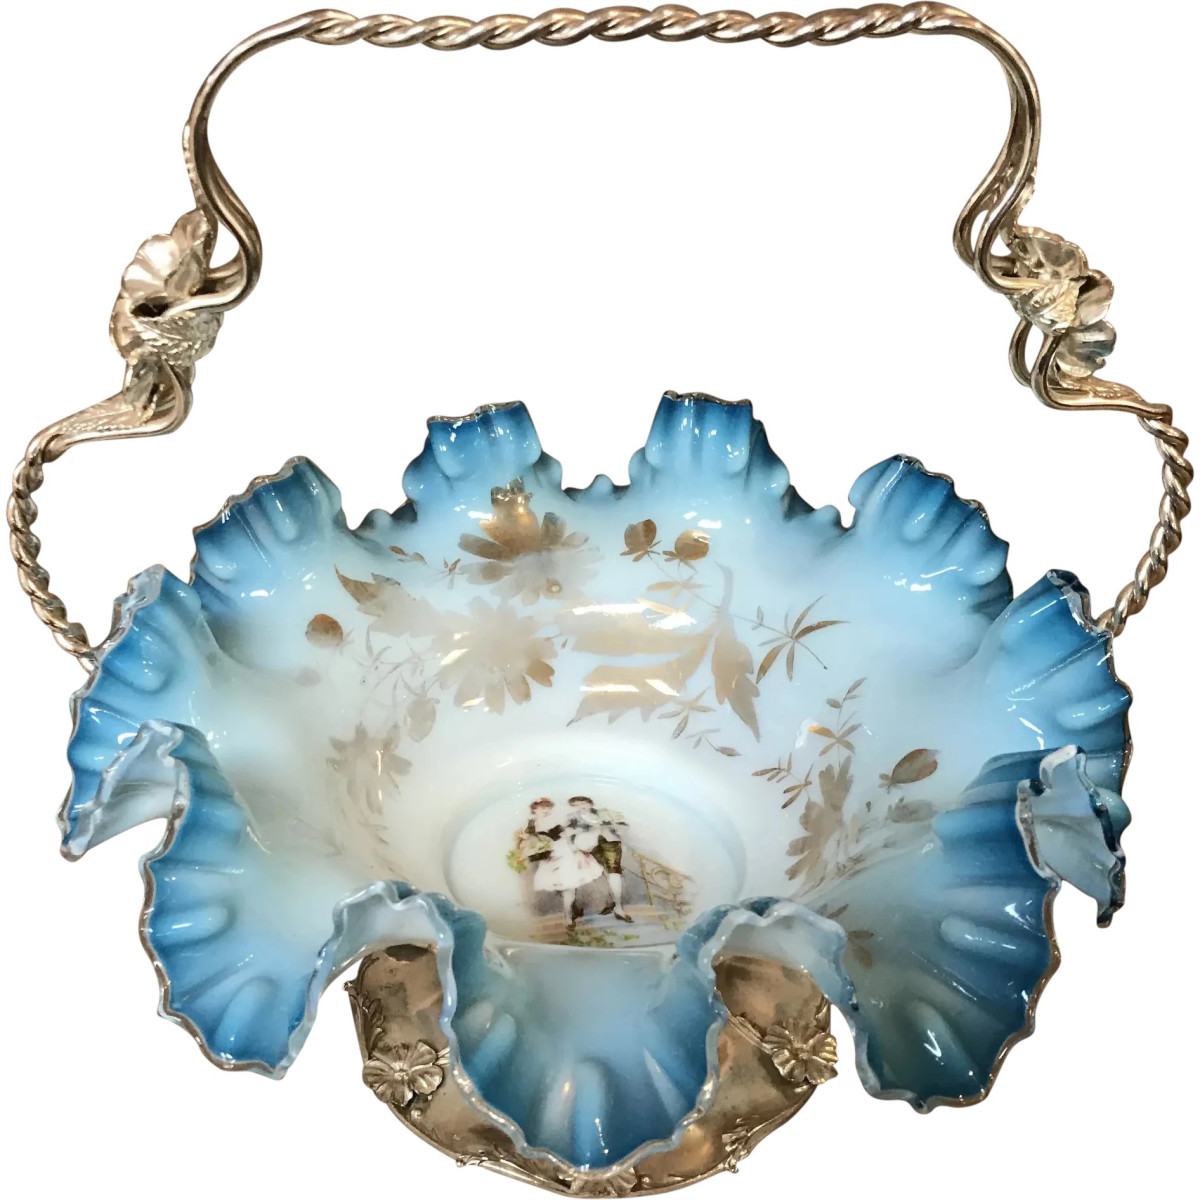 """Victorian blue ruffled-edge bride's basket with quadruple-plated stand, Forbes Silver Co., hand painted with a man, woman and gold leaf, ornate stand has a twist design  and flowers, 12-1/4"""" x 12-1/2""""; $1,095."""